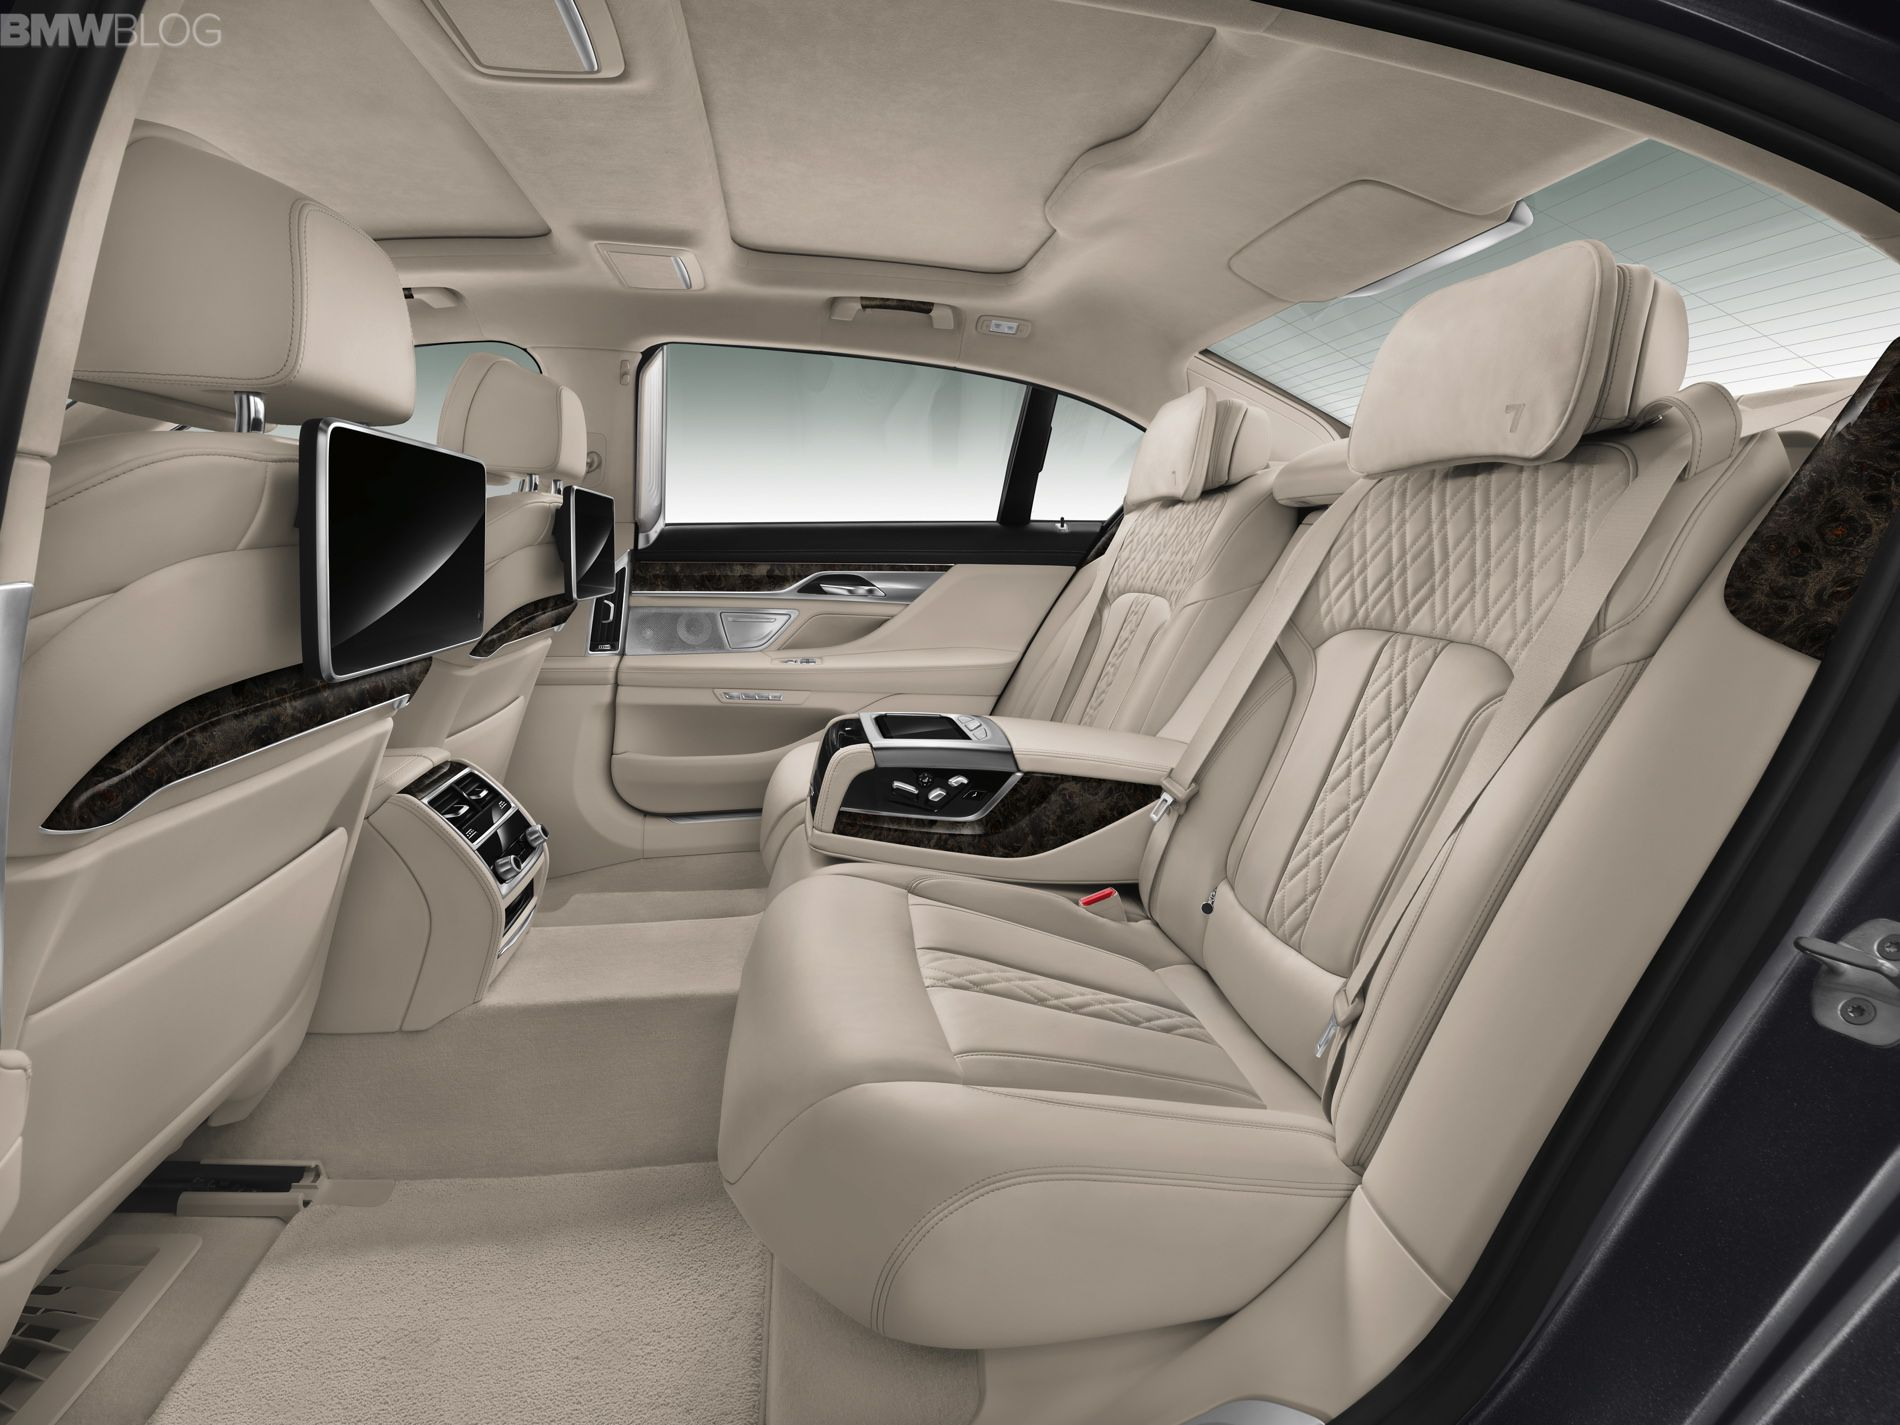 2016 Bmw 7 Series Cabin Technology And Luxury With Images Bmw